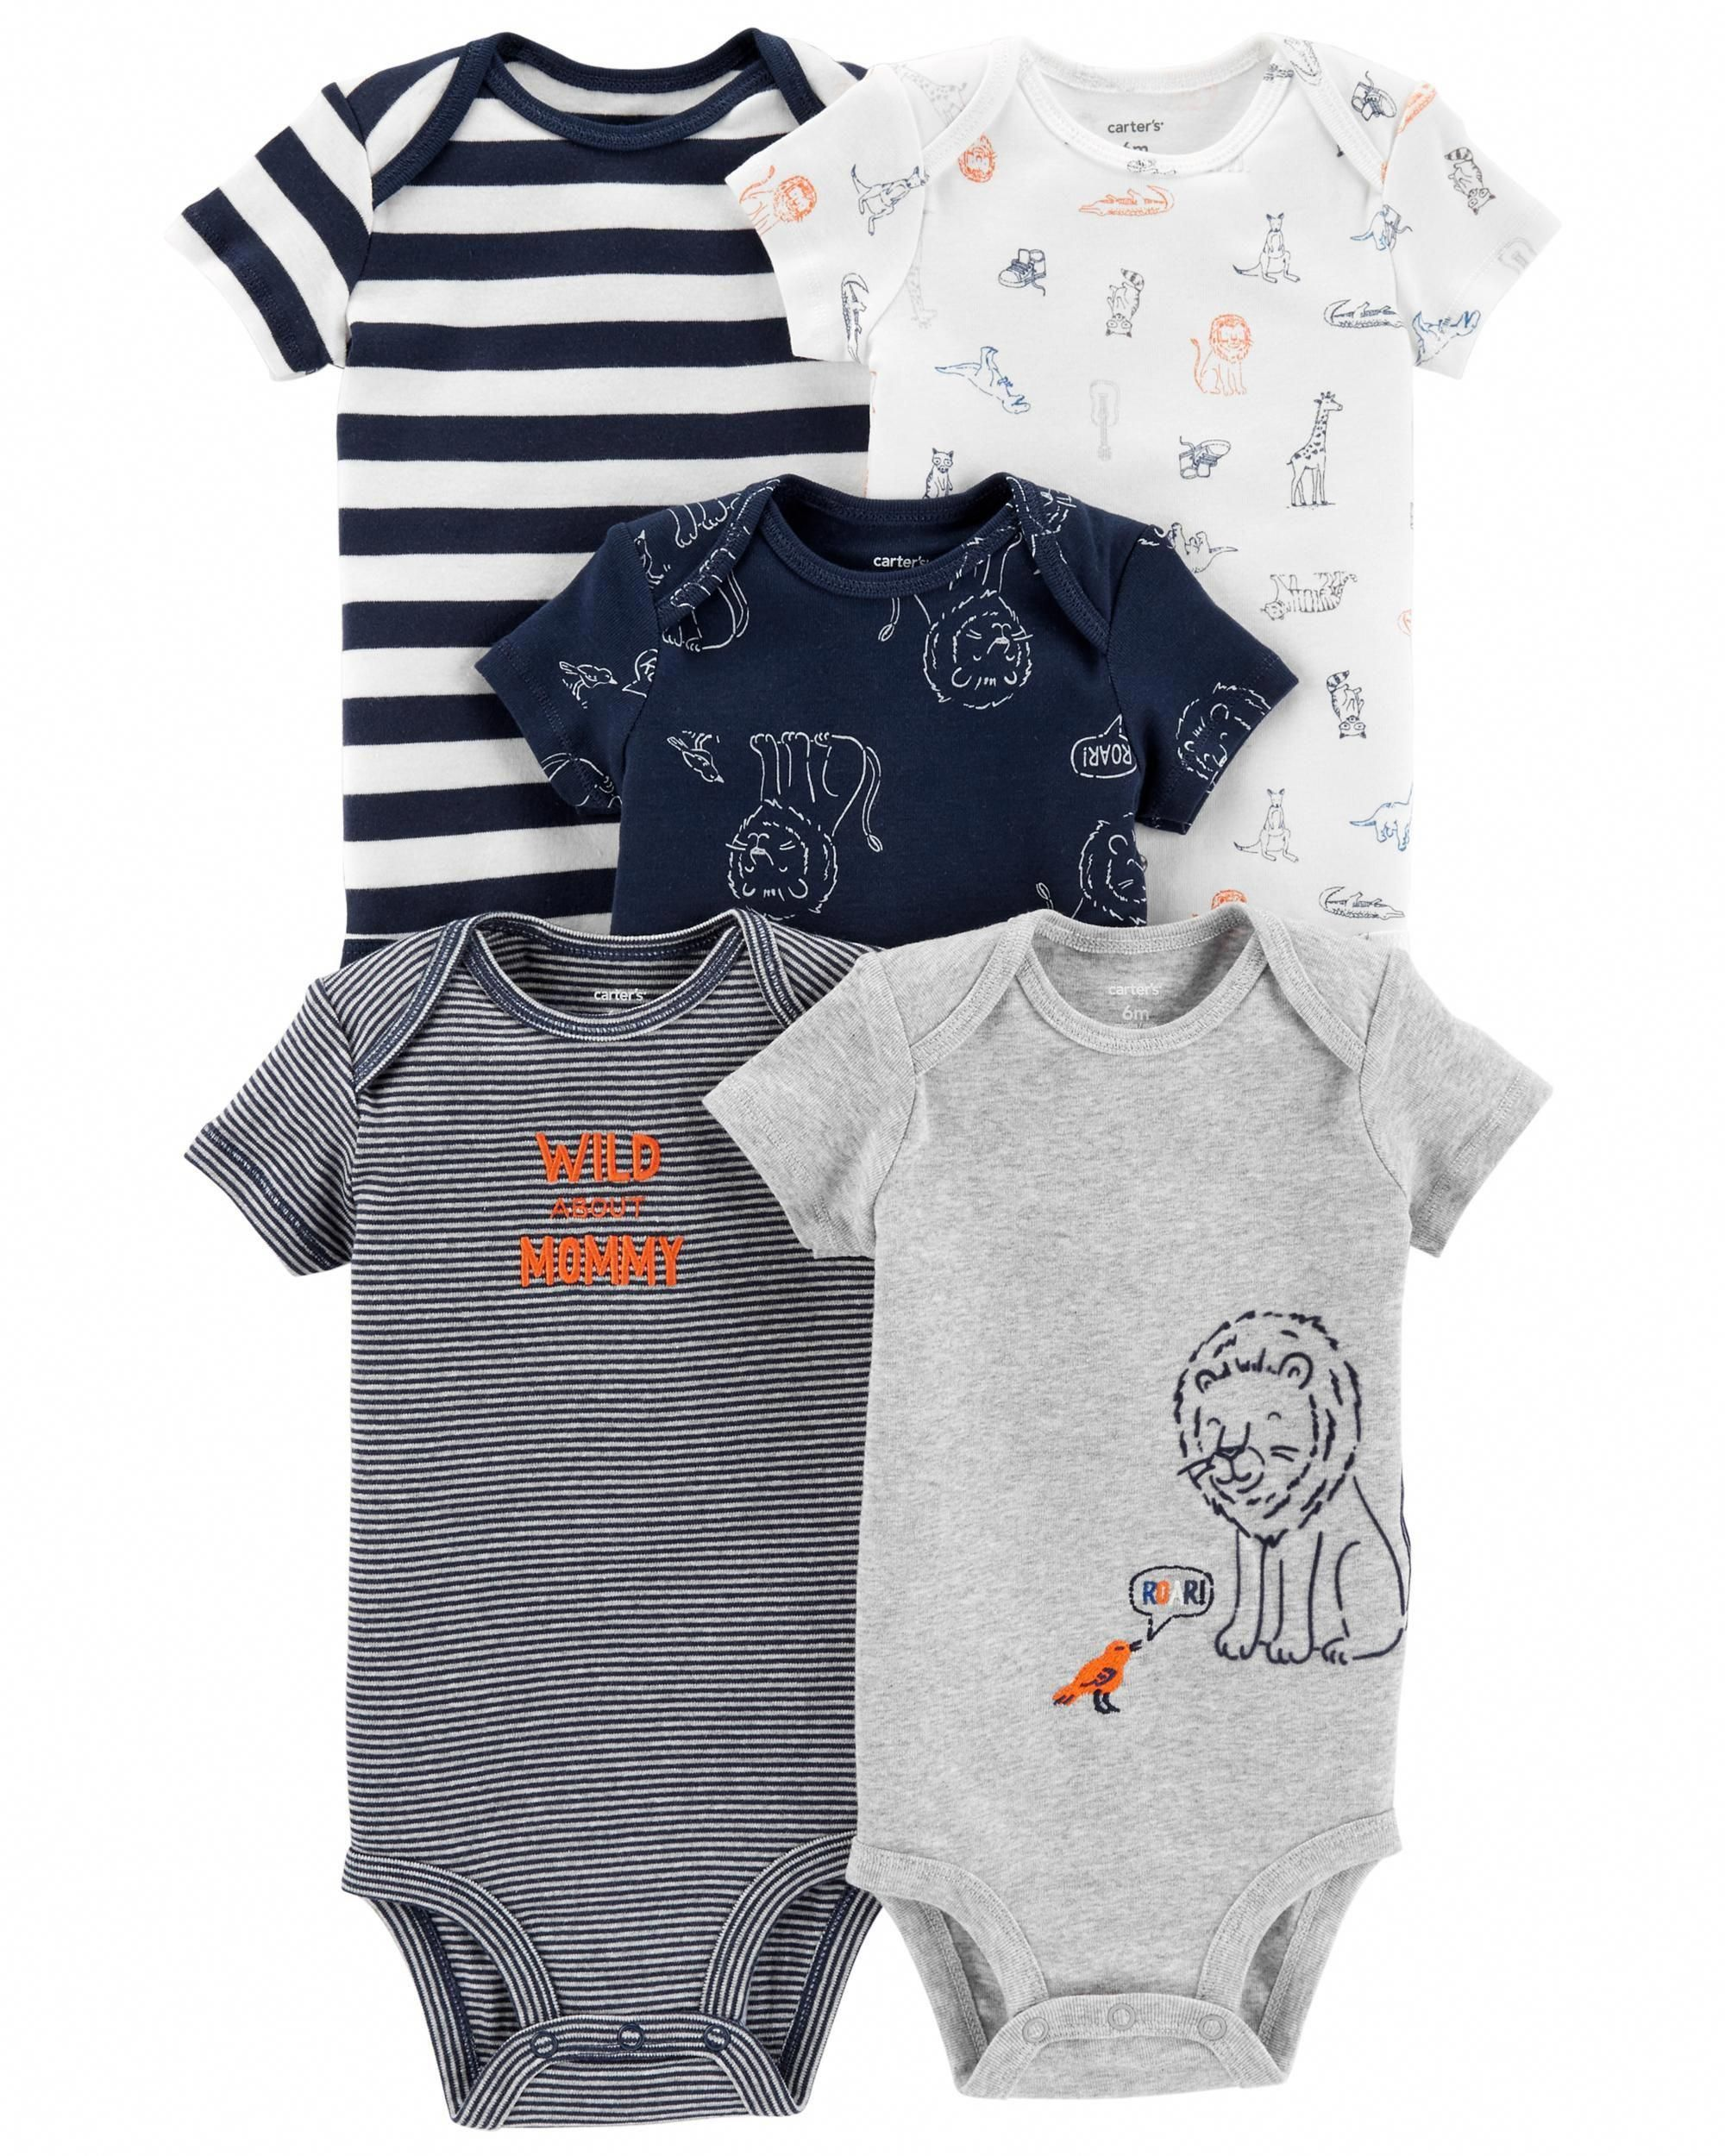 cea0c750f Fall Outfits For Boys | Popular Boys Clothing Stores | Kids Clothing  Retailers 20190401